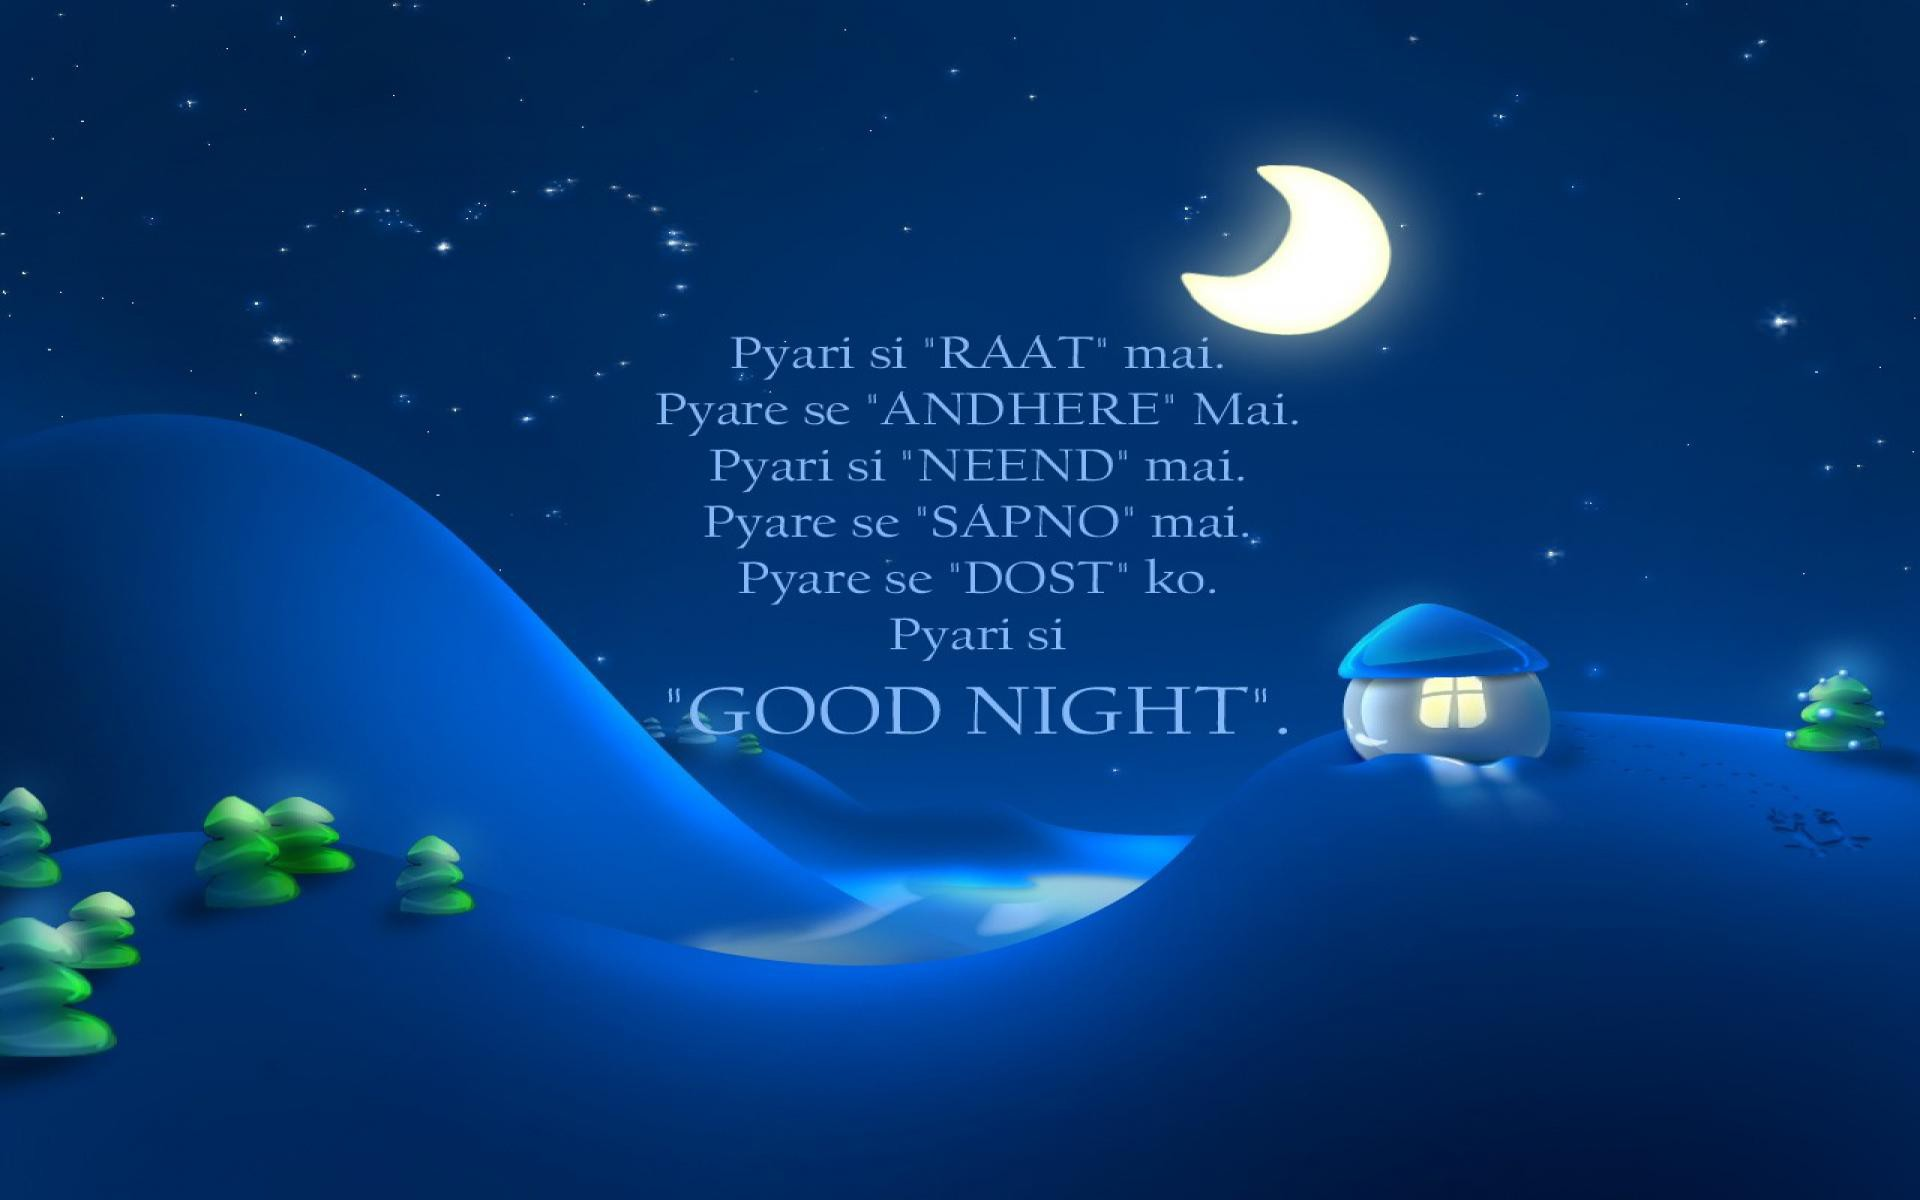 Good Night Wish Hindi